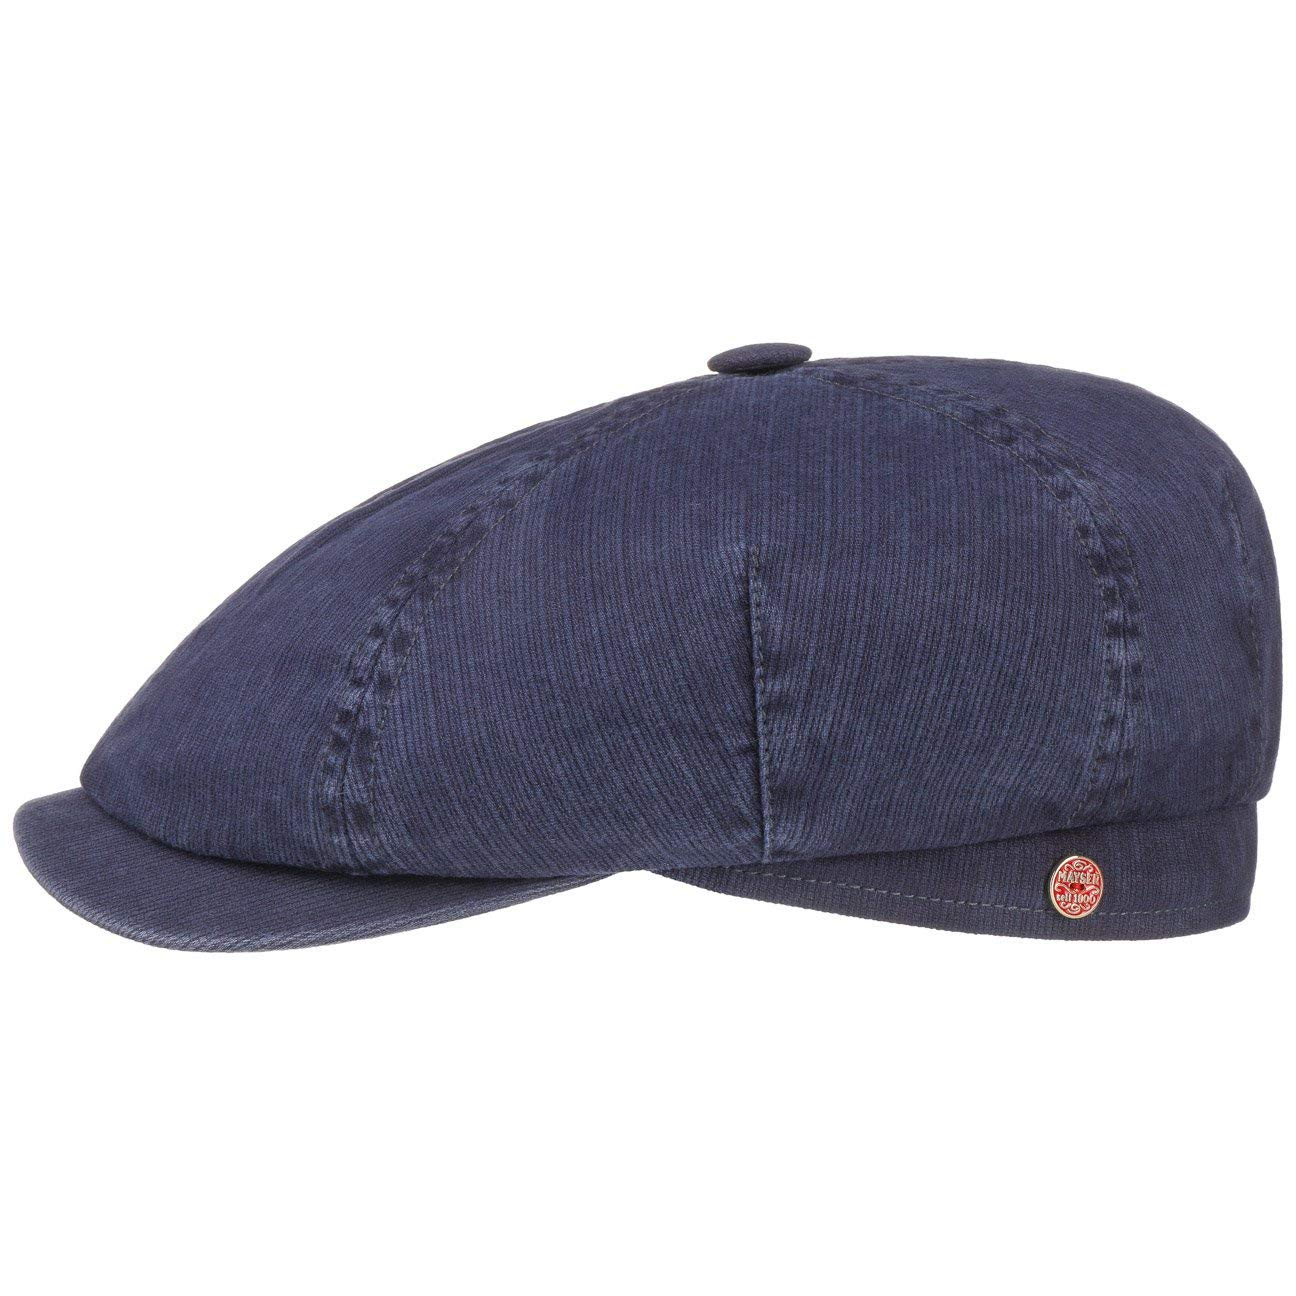 Mayser Talisso Newsboy Cap Women/Men Blue 7